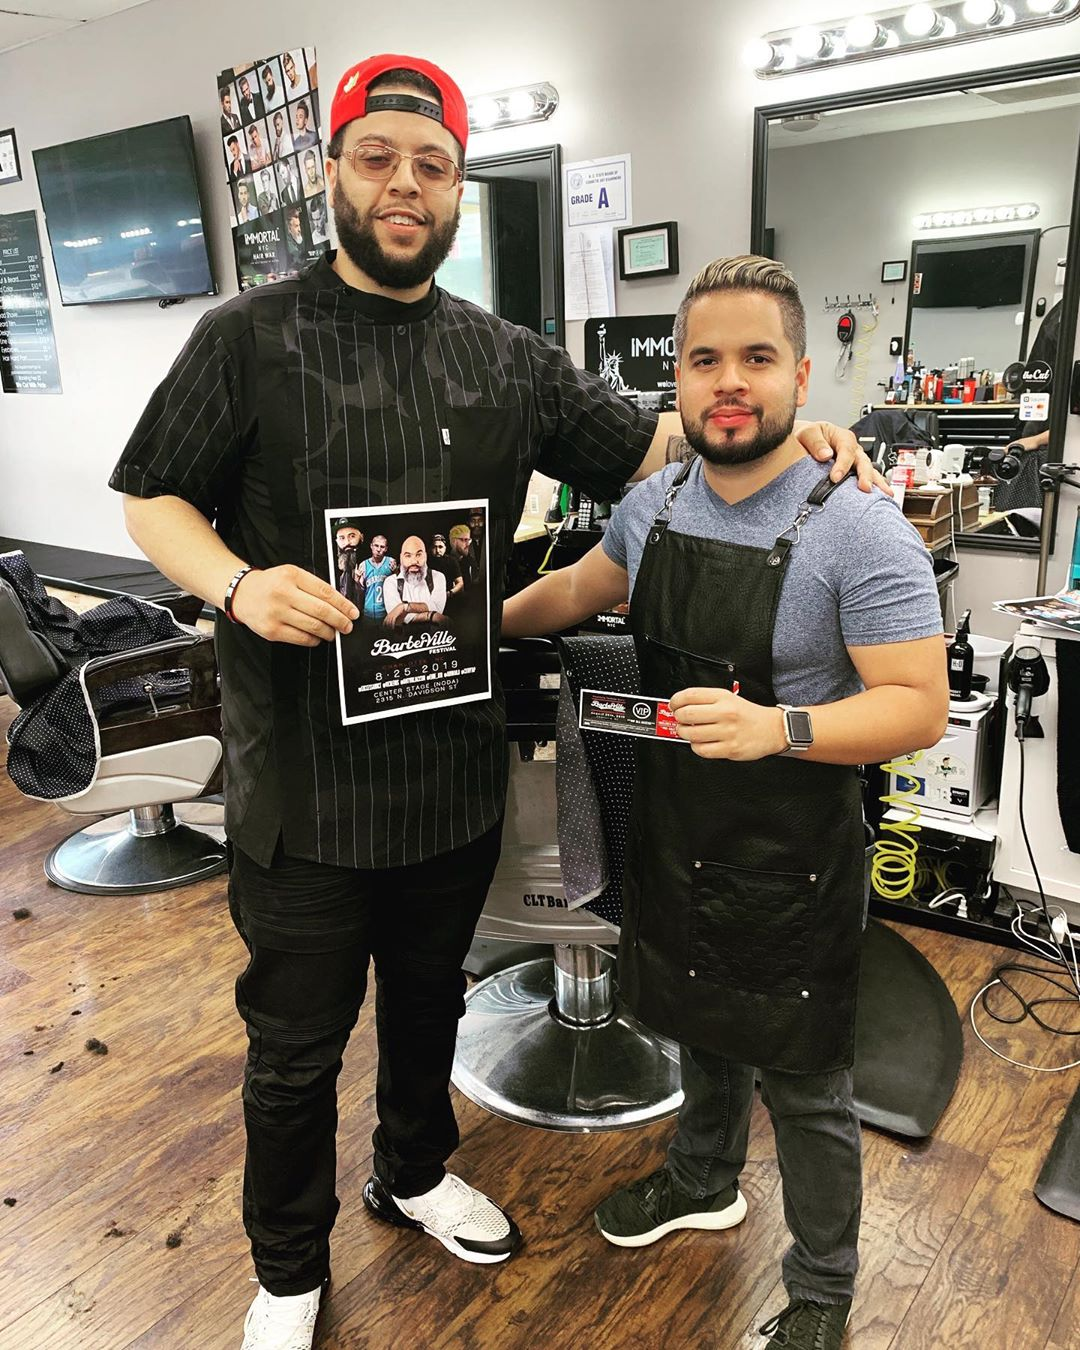 Festival Honoring Barbers to Come to Charlotte, NC